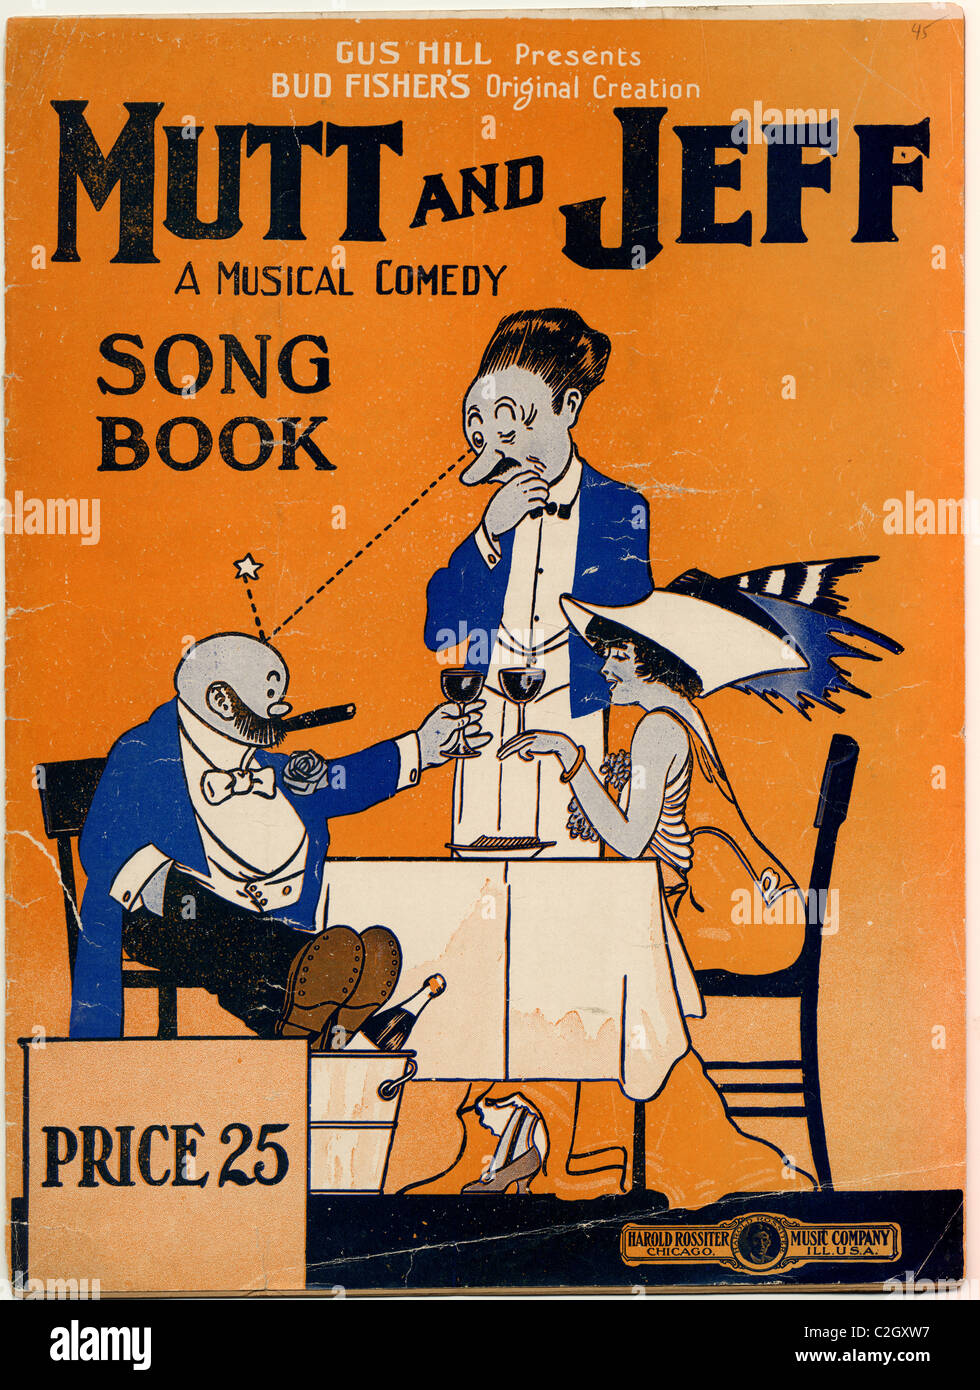 Mutt & Jeff A Musical Comedy Song Book - Stock Image